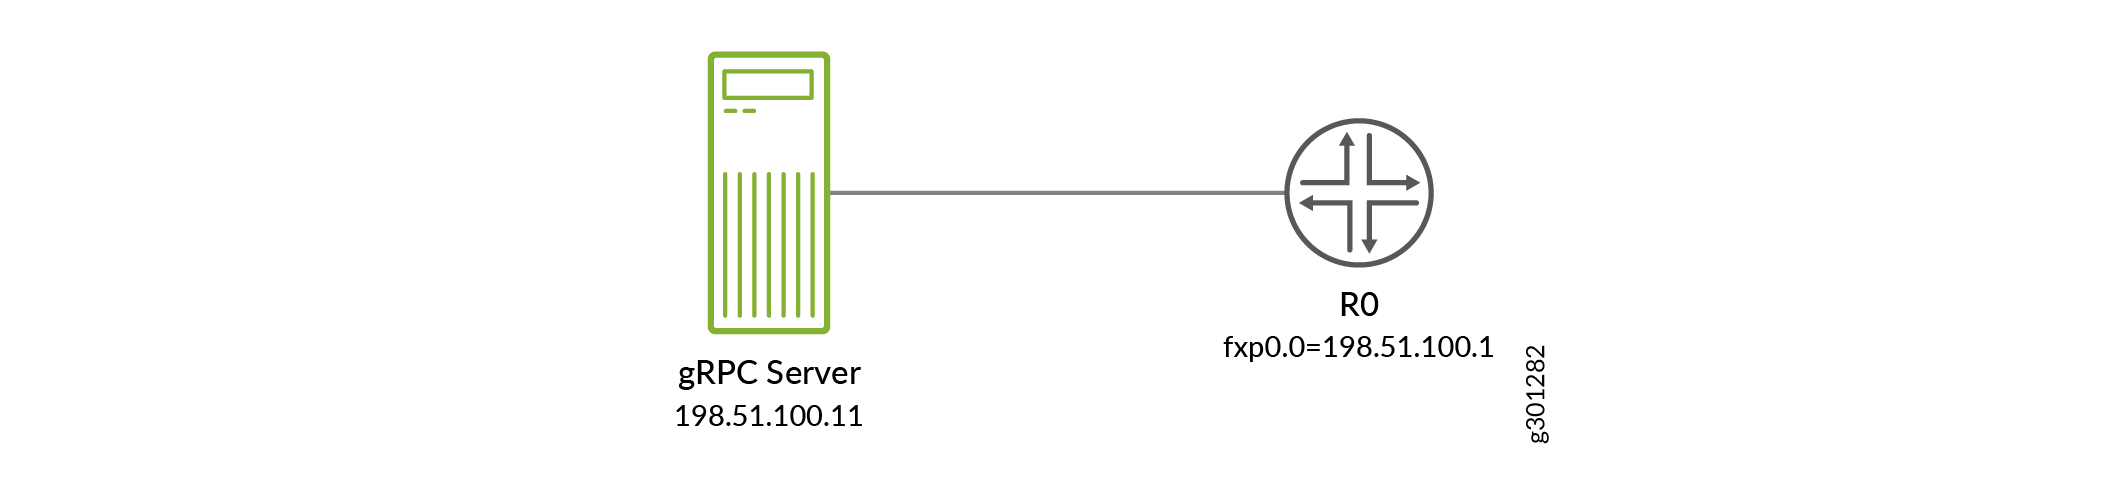 NETCONF over Outbound HTTPS Topology